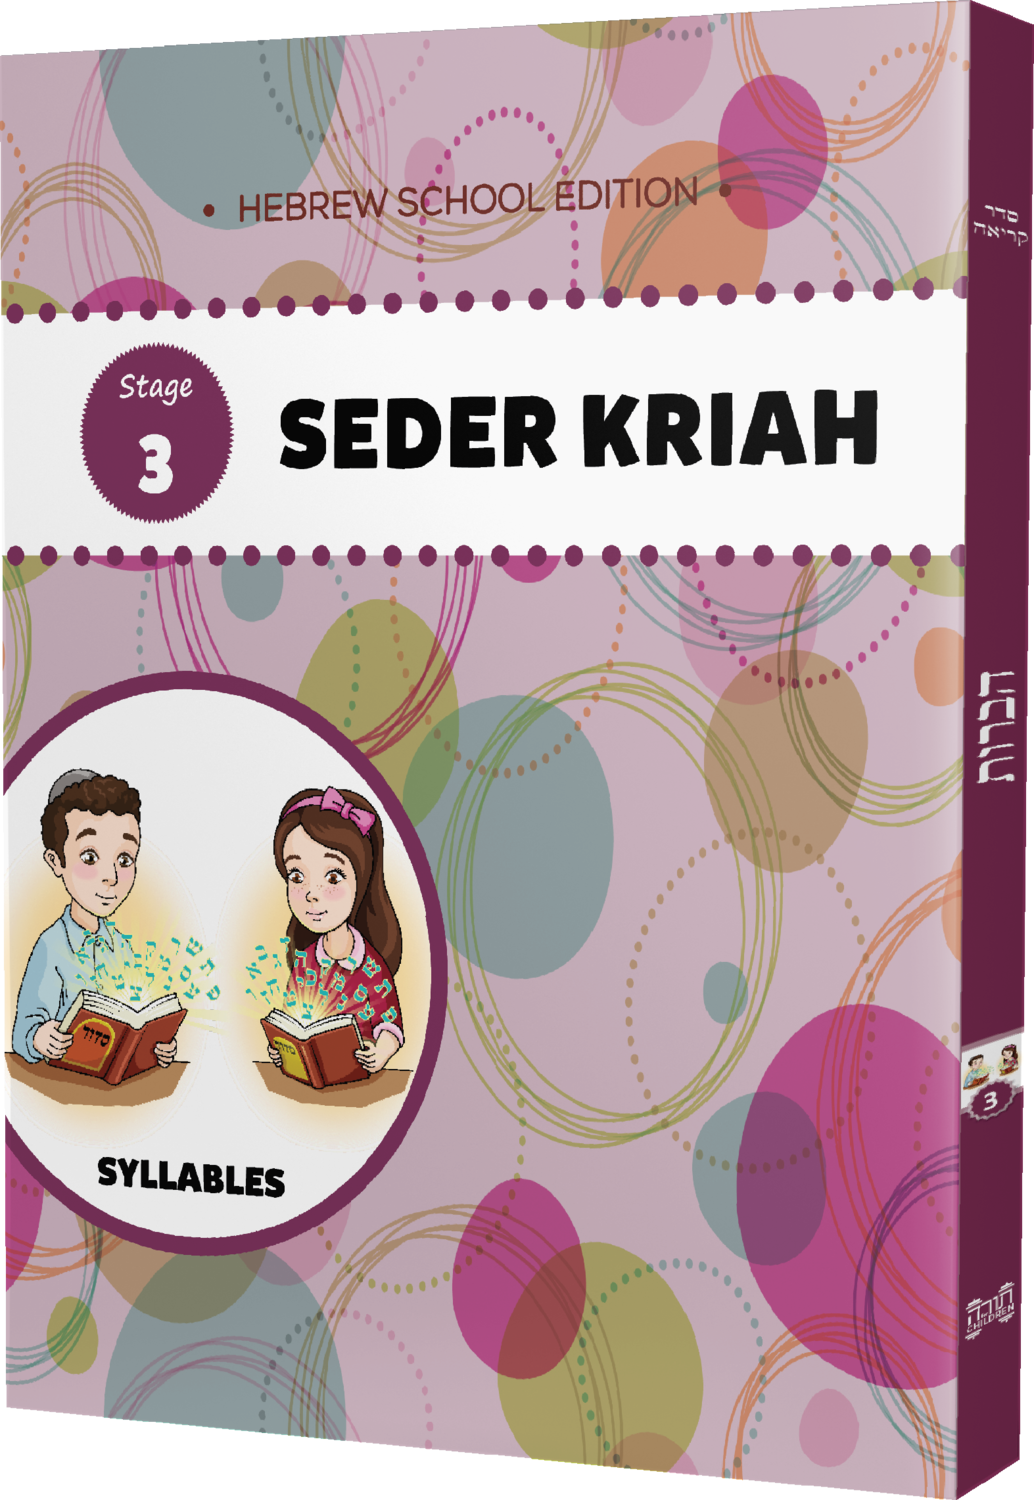 Seder Kriah Hebrew School Edition Stage 3 SYLLABLES